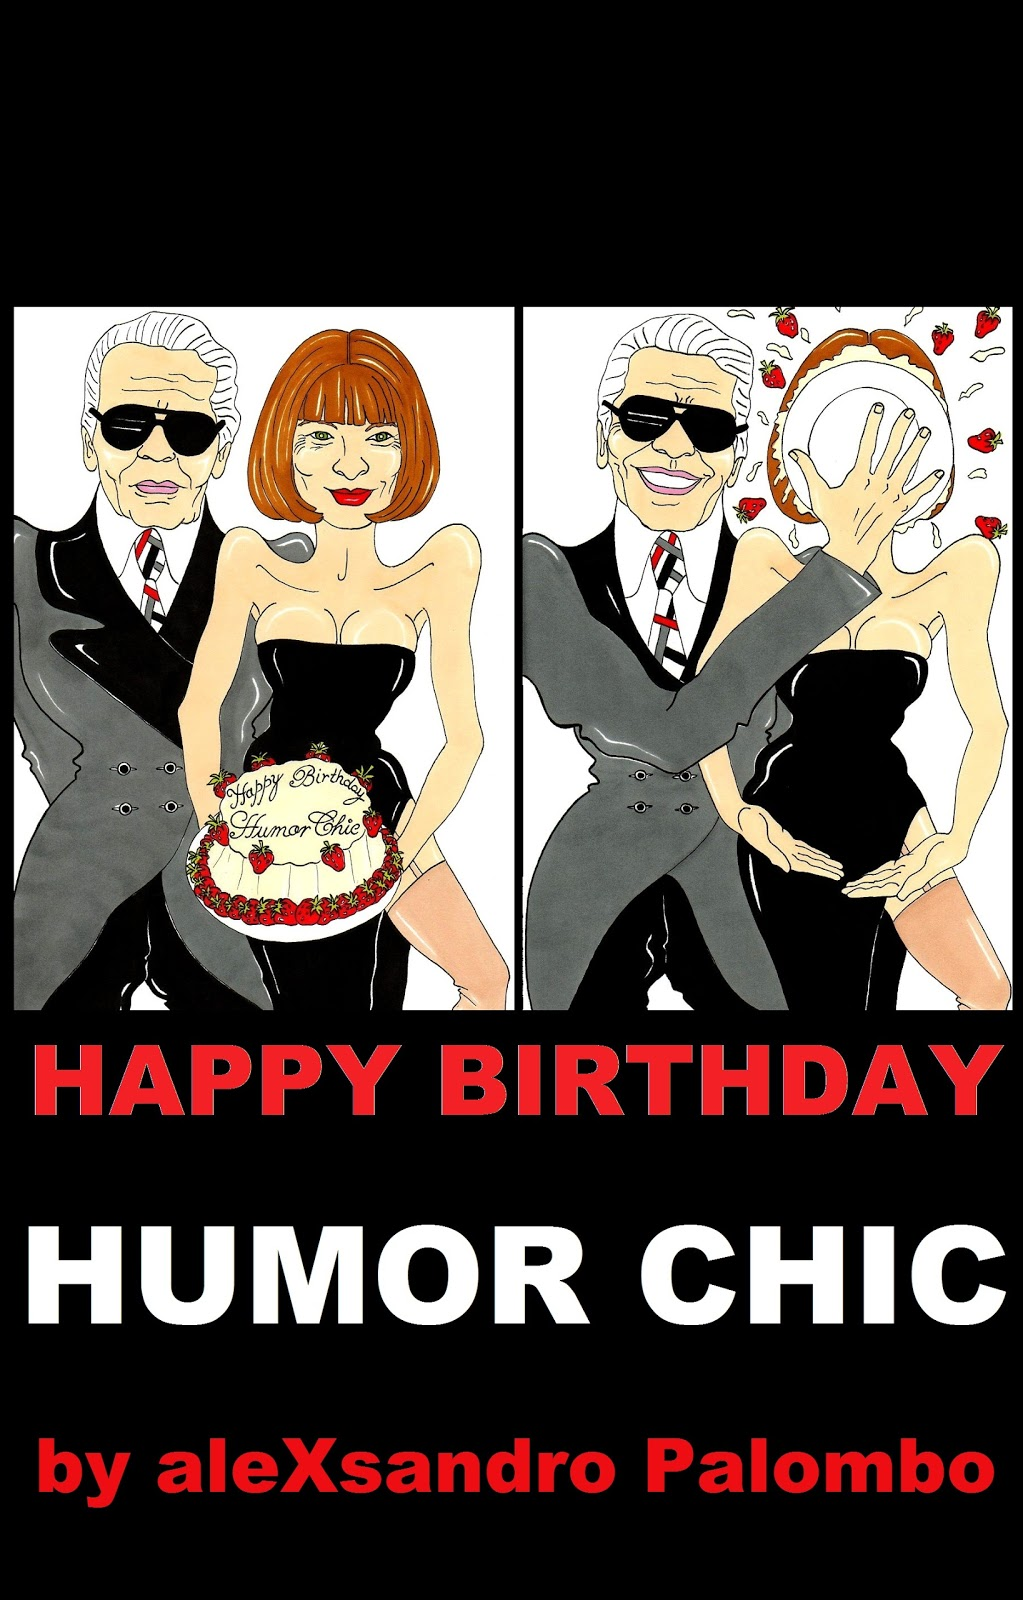 happy birthday humor chic by alexsandro palombo is the seven